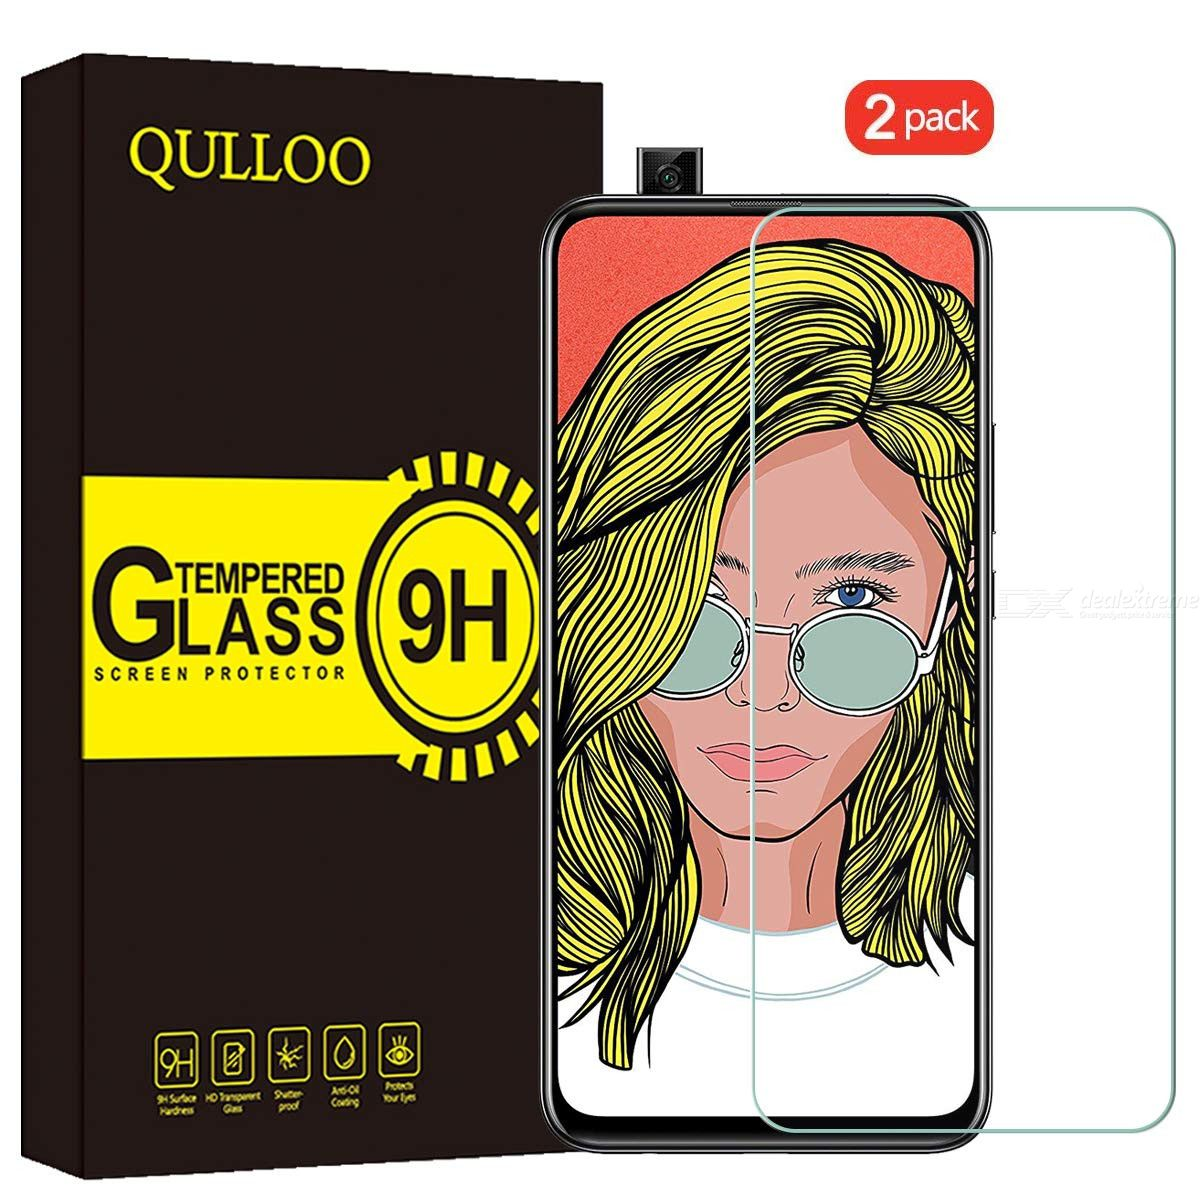 Tempered Glass Screen Protector 2.5D 9H Full Coverage Protection Film for Huawei P Smart ZHuawei Y9 Prime 2019